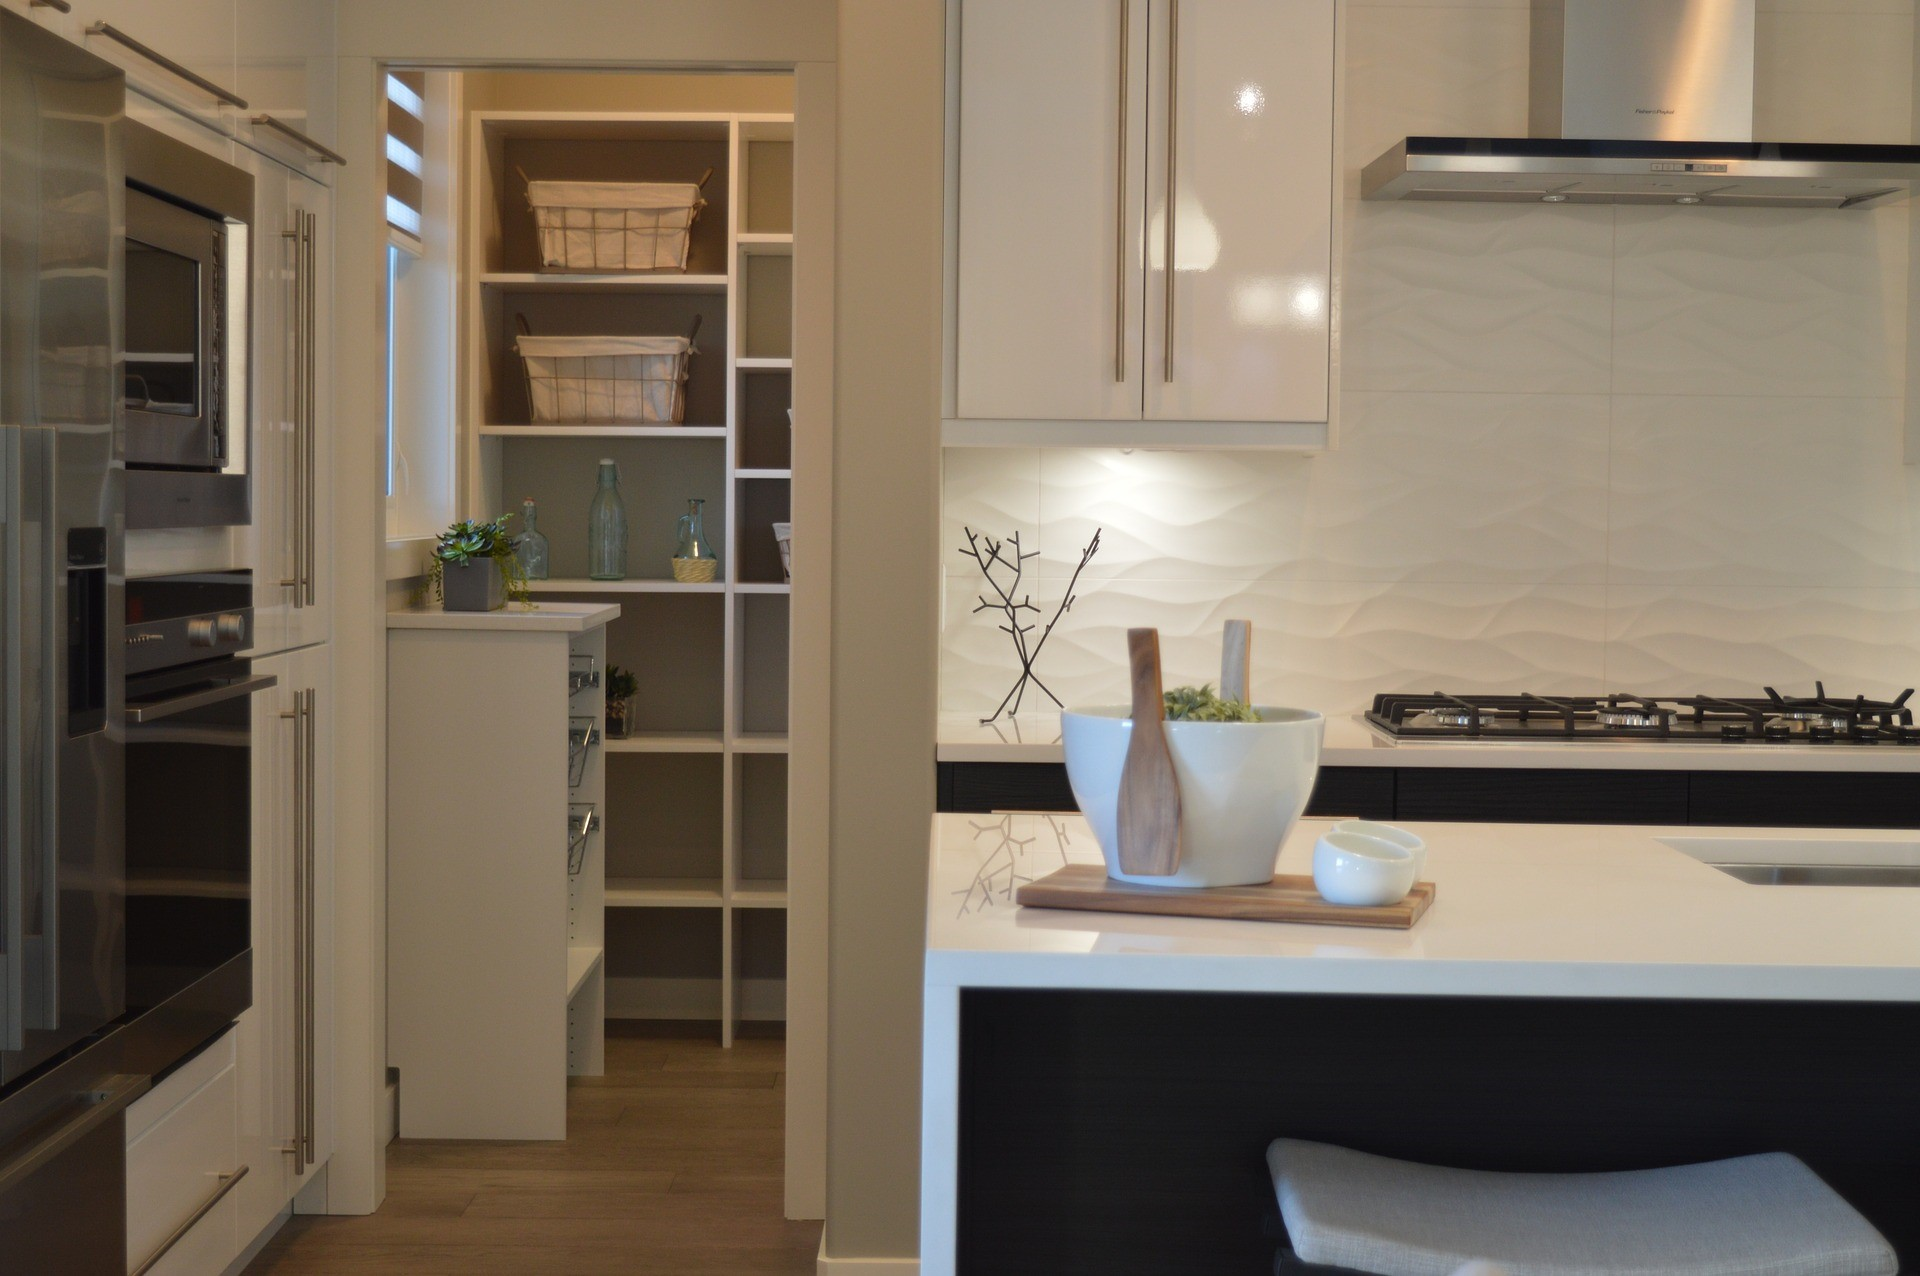 Pantry and Storage Solutions for Your Renovation